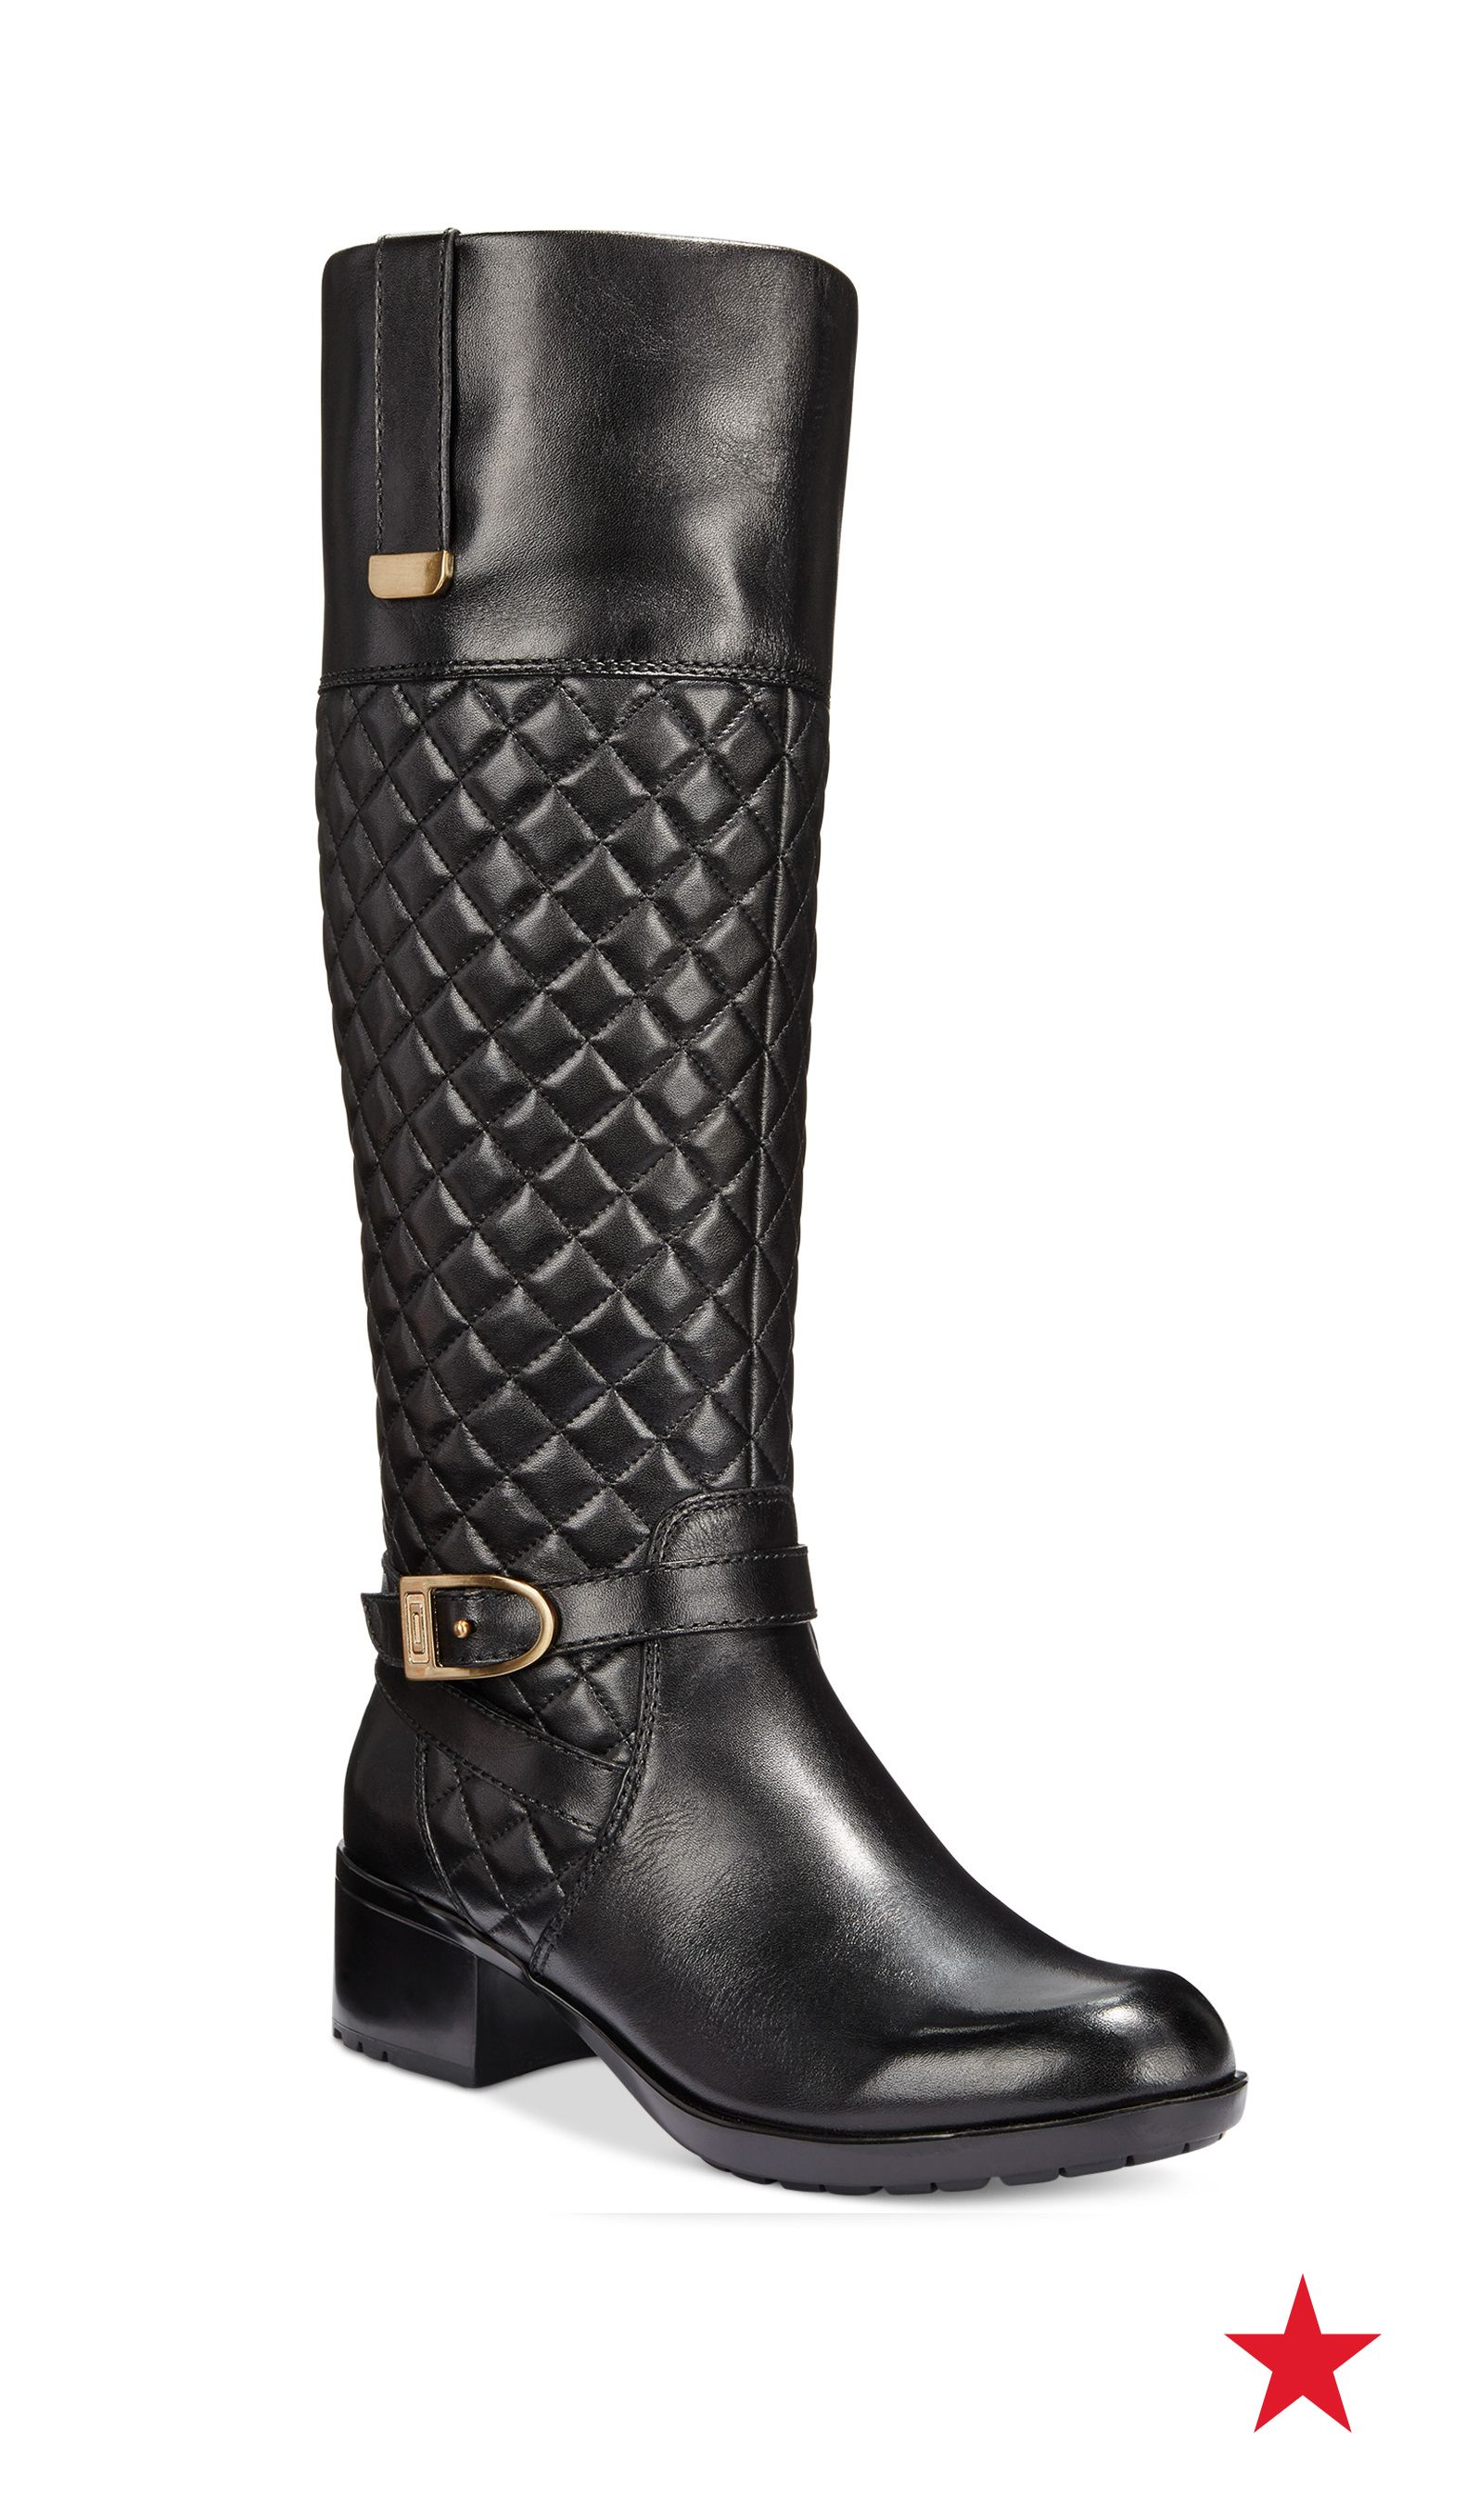 bb448f0a78b We're totally loving these Bandolino riding boots. Check out that ...